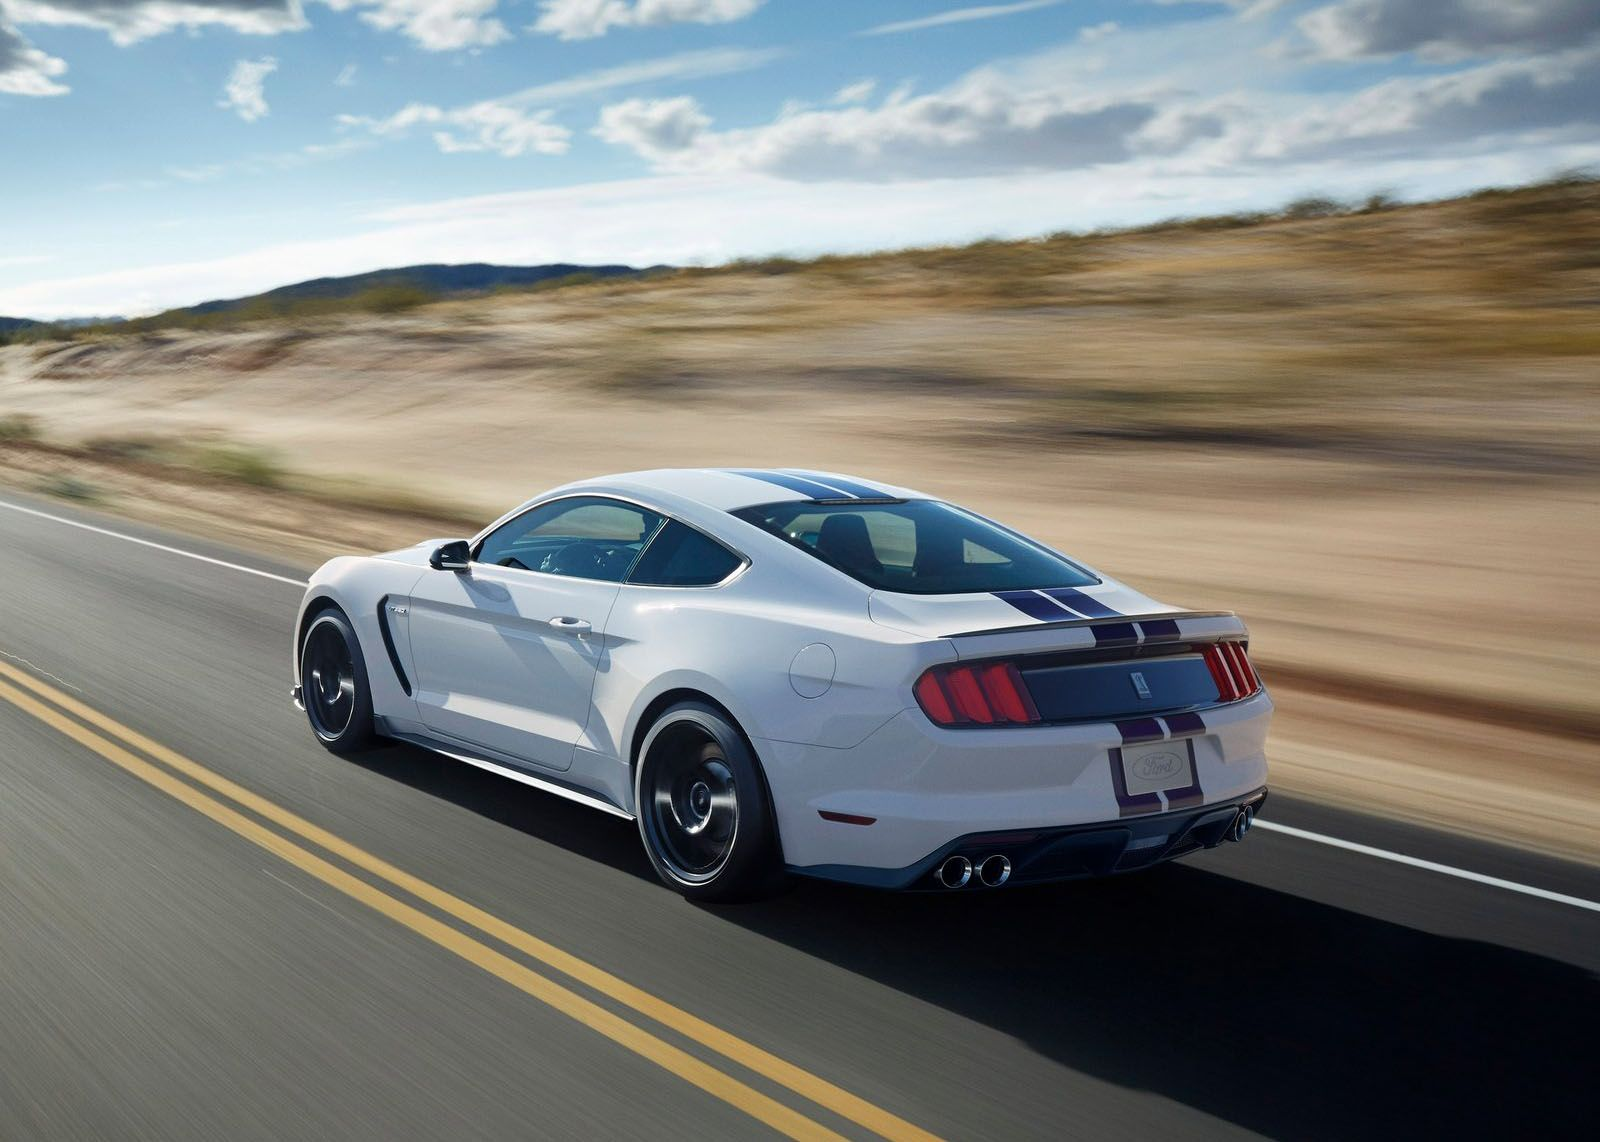 All Types mustang gt350 2016 : Shelby GT350 Mustang In White With Blue Stripes Is 500 HP Of ...